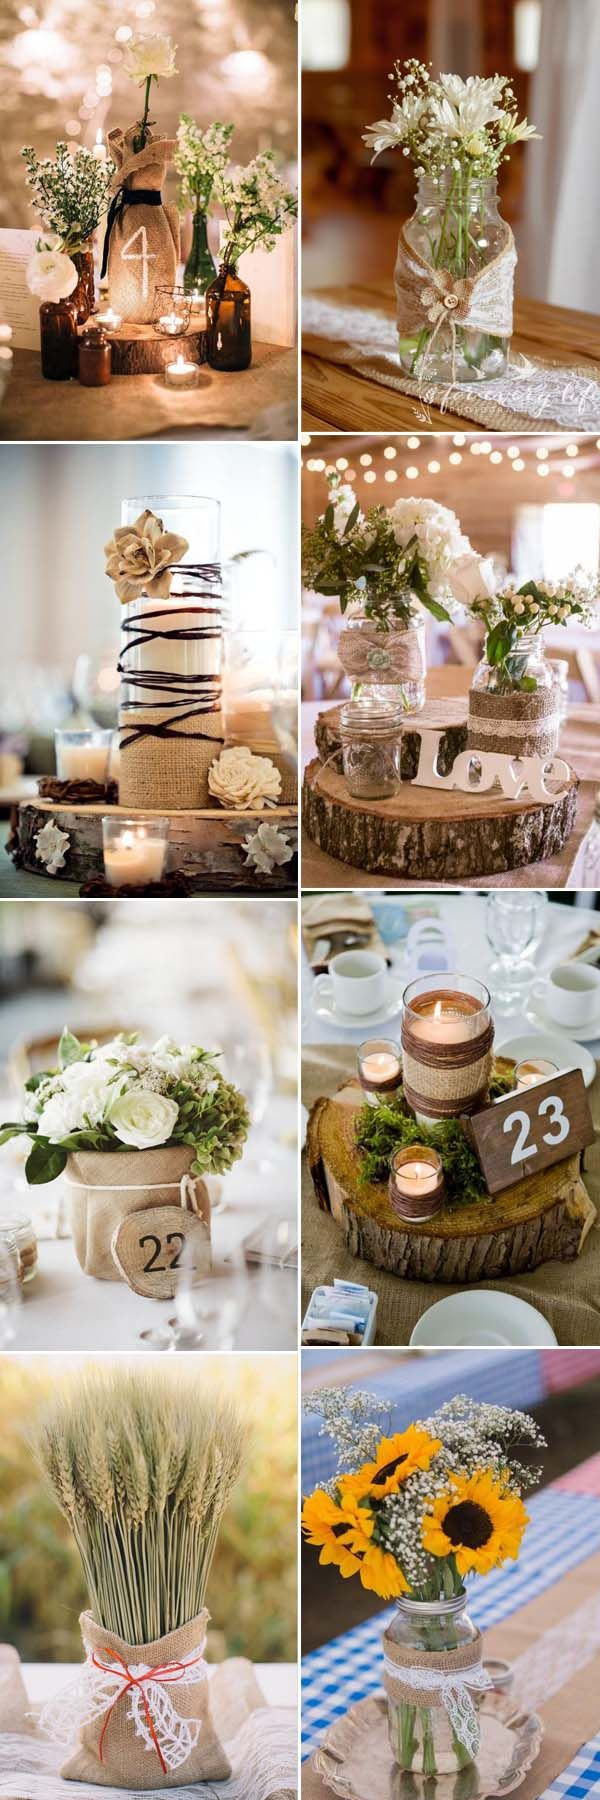 beautiful rustic wedding centerpieces decorated with burlap